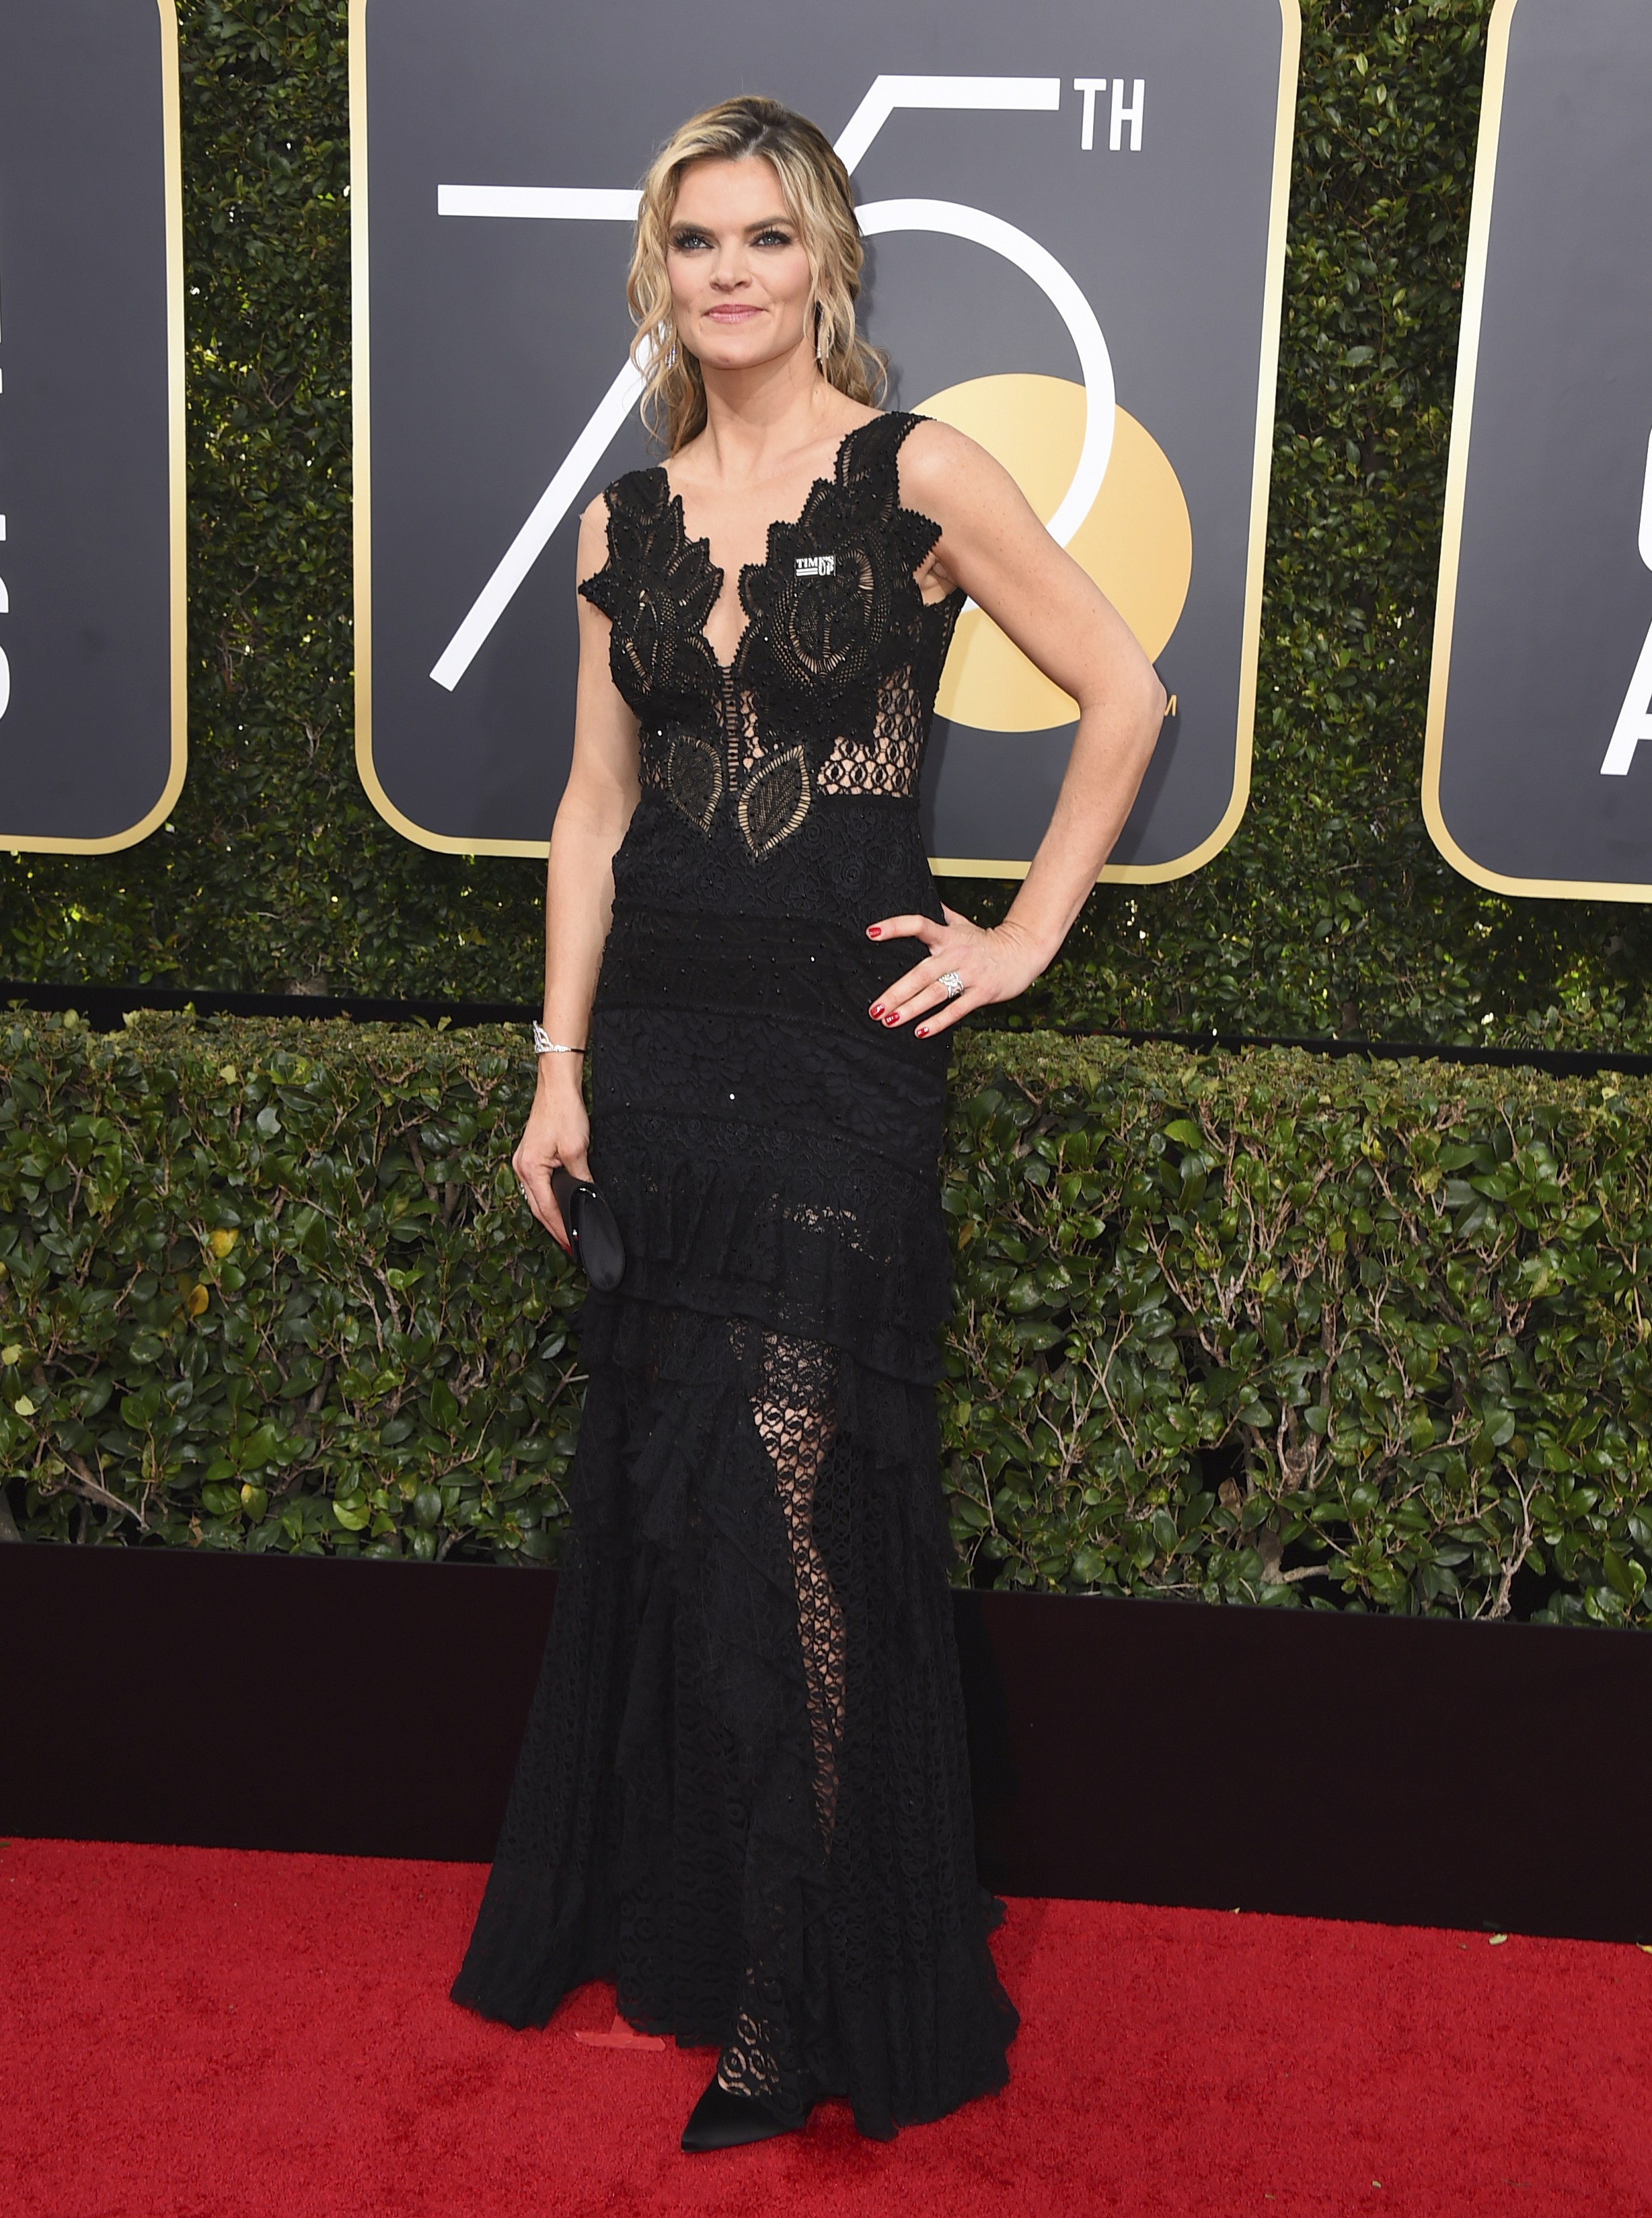 <div class='meta'><div class='origin-logo' data-origin='AP'></div><span class='caption-text' data-credit='Jordan Strauss/Invision/AP'>Missi Pyle arrives at the 75th annual Golden Globe Awards at the Beverly Hilton Hotel on Sunday, Jan. 7, 2018, in Beverly Hills, Calif.</span></div>